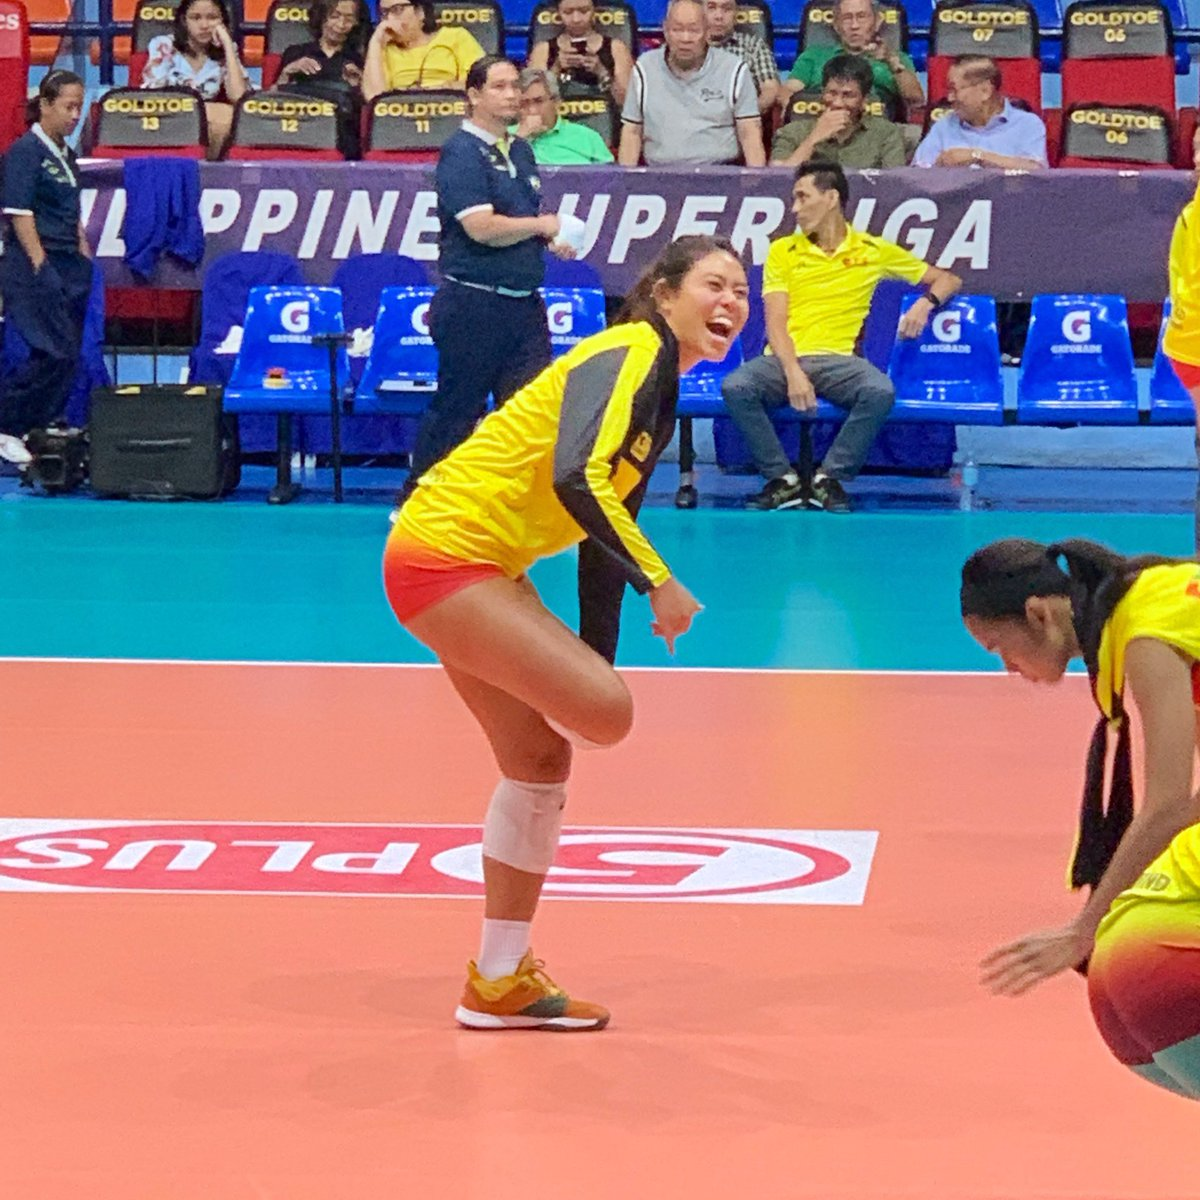 Kalei Mau looks happy wearing yellow for F2.  #PSLAFC #PSLAFC2019 @Leimau_  @SuperLigaPH    by @camillasaguin<br>http://pic.twitter.com/v0hYrQu6ip